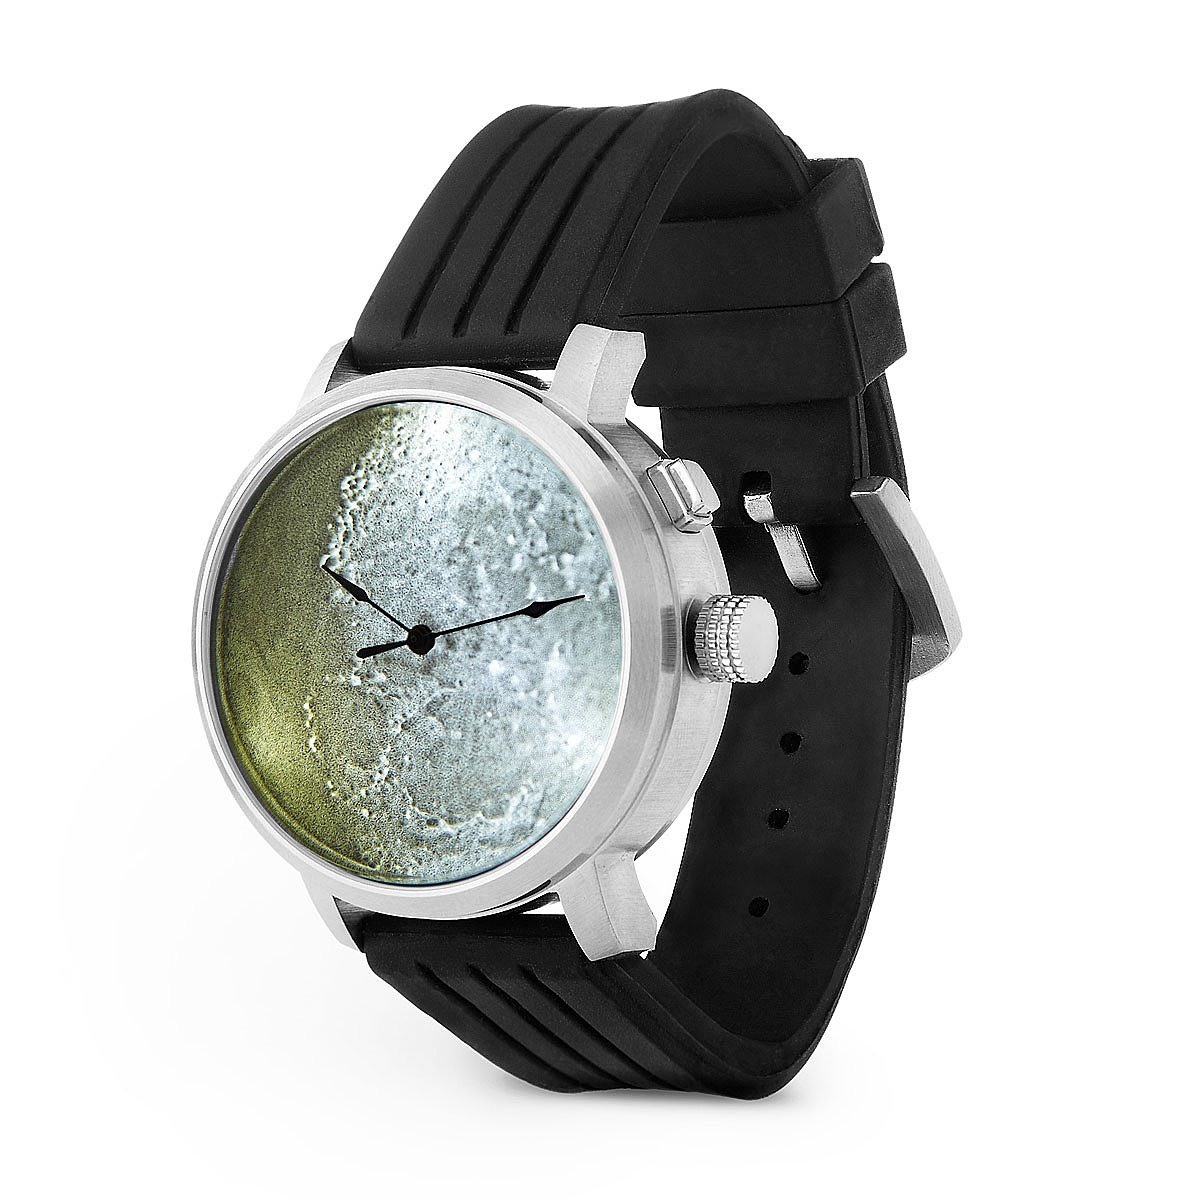 watch uncommongoods watches jewelry moon product clock